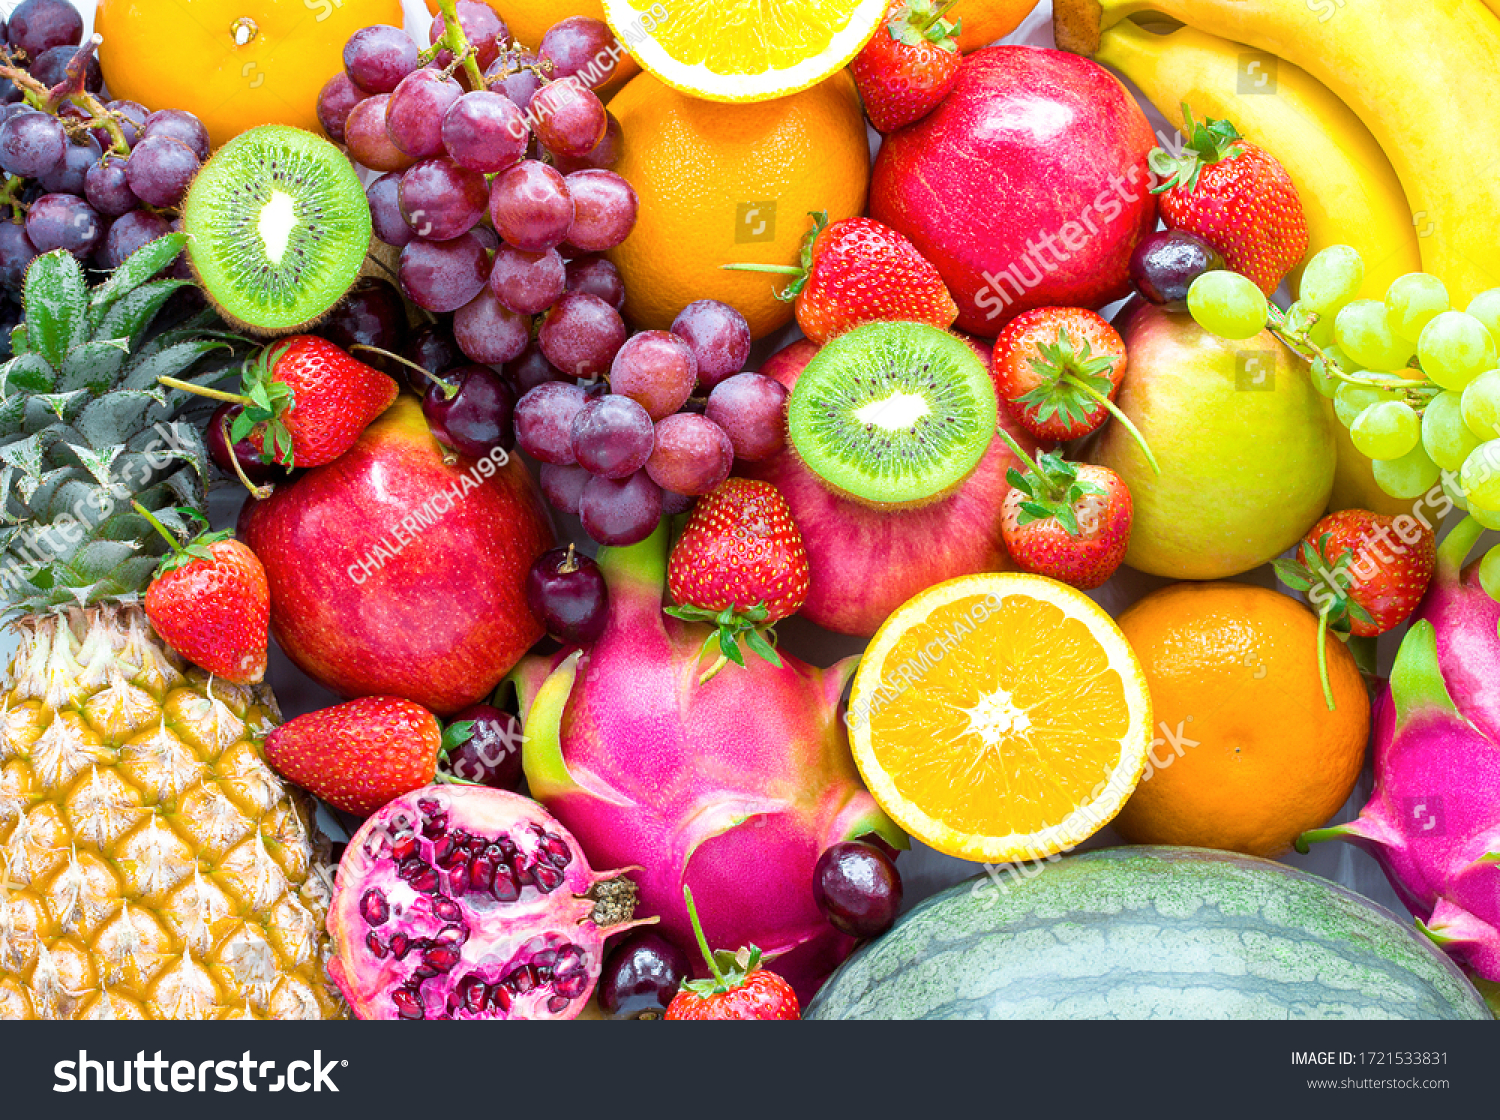 Fresh fruits.Assorted fruits colorful,clean eating,Fruit background #1721533831